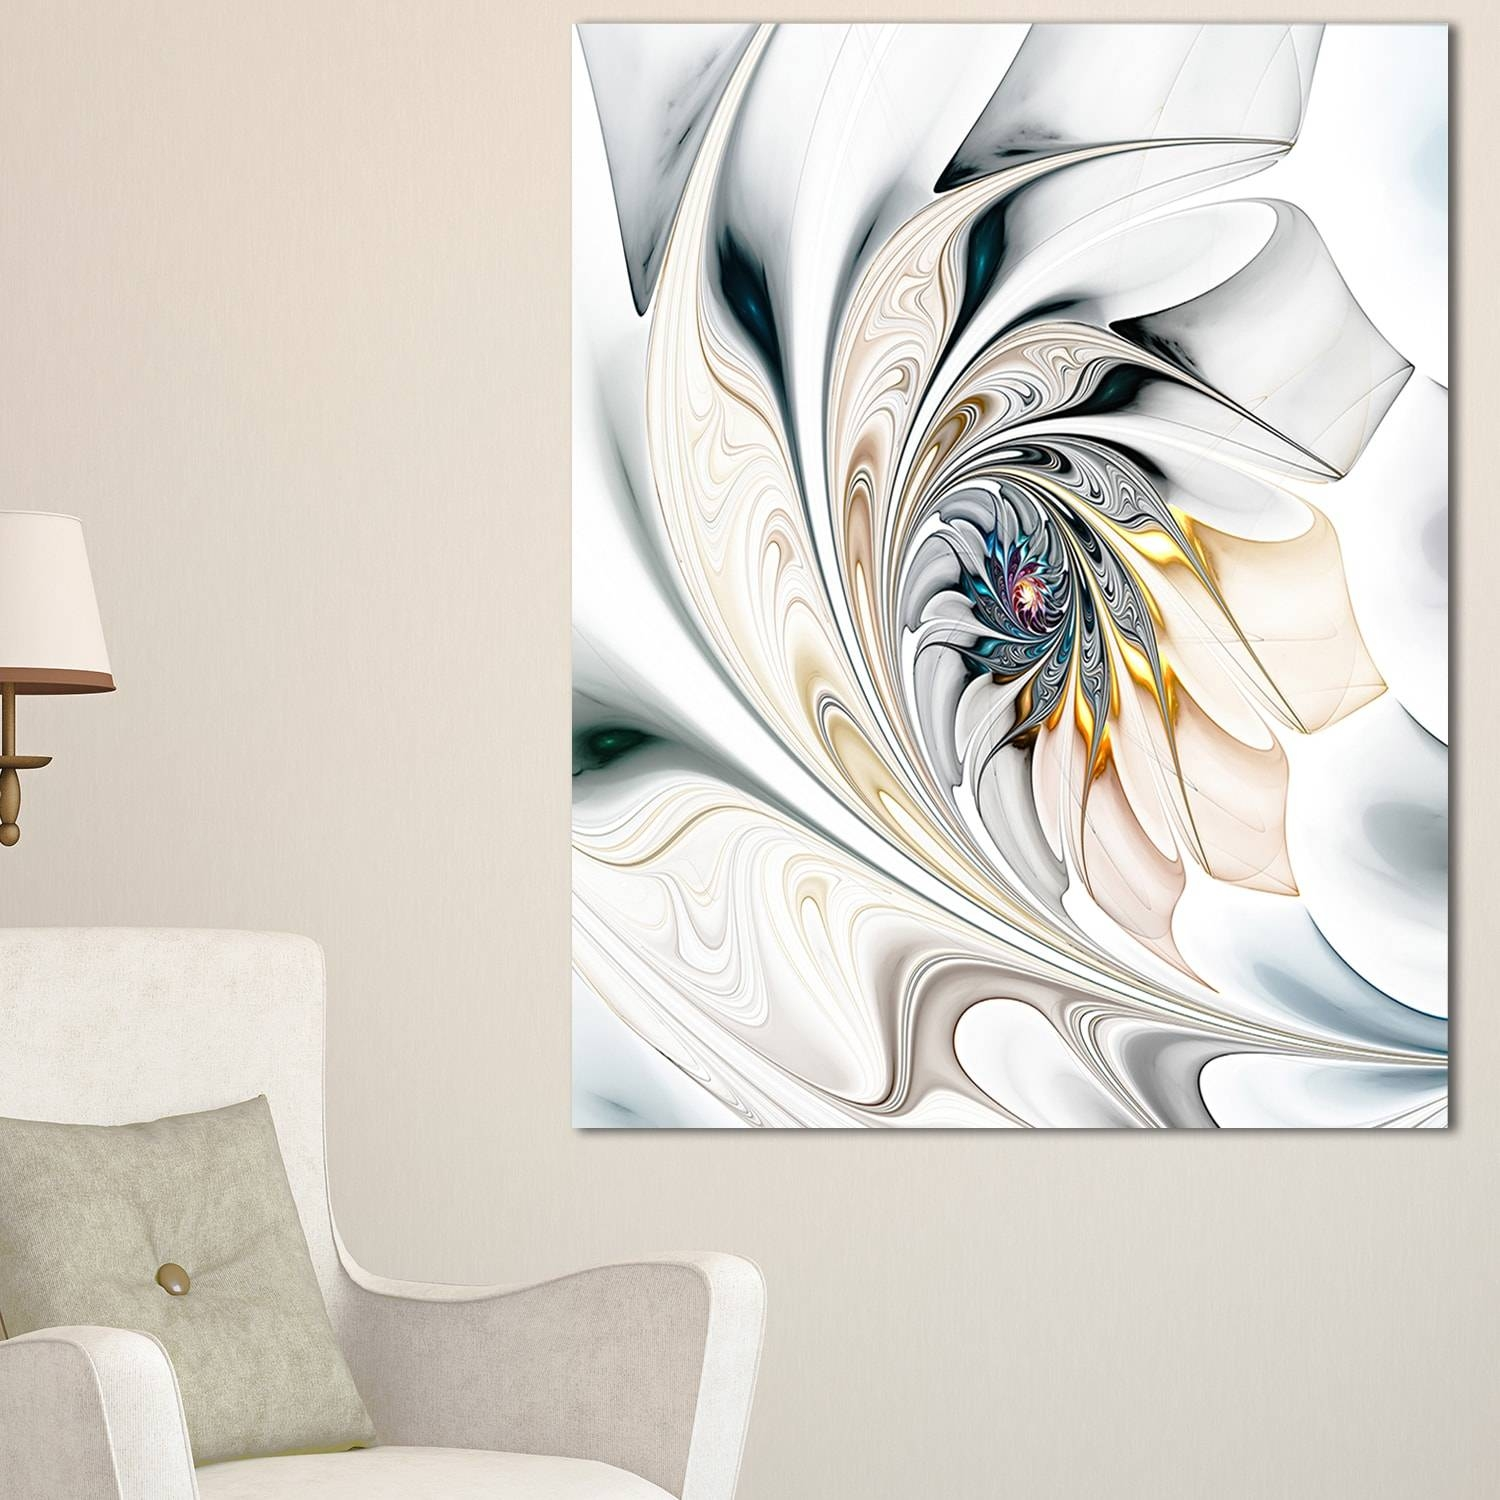 White Stained Glass Floral Art – Large Floral Glossy Metal Wall For Most Up To Date White Metal Wall Art (View 20 of 20)